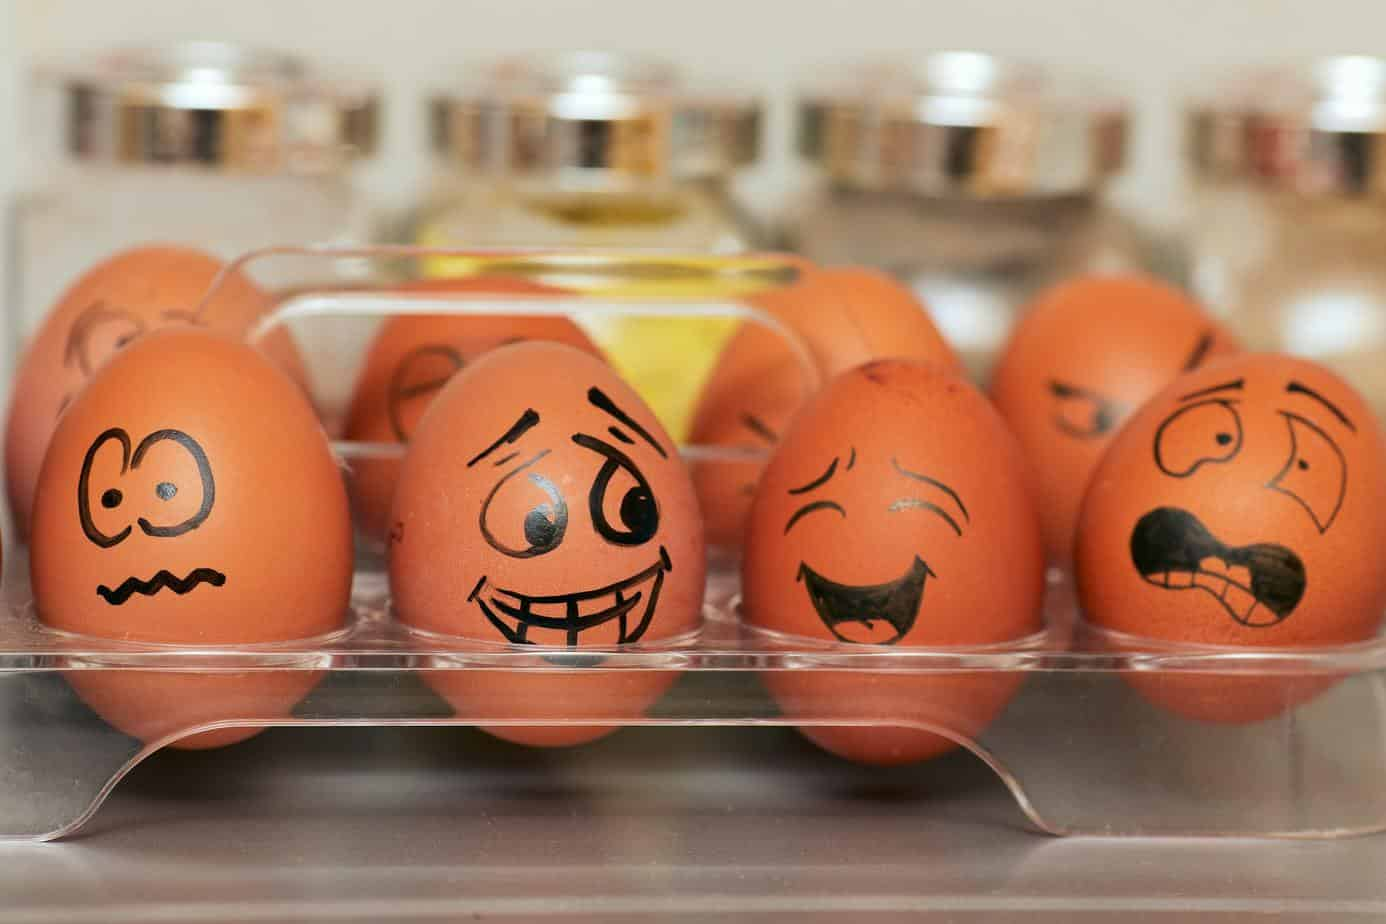 Eggs with facial expressions